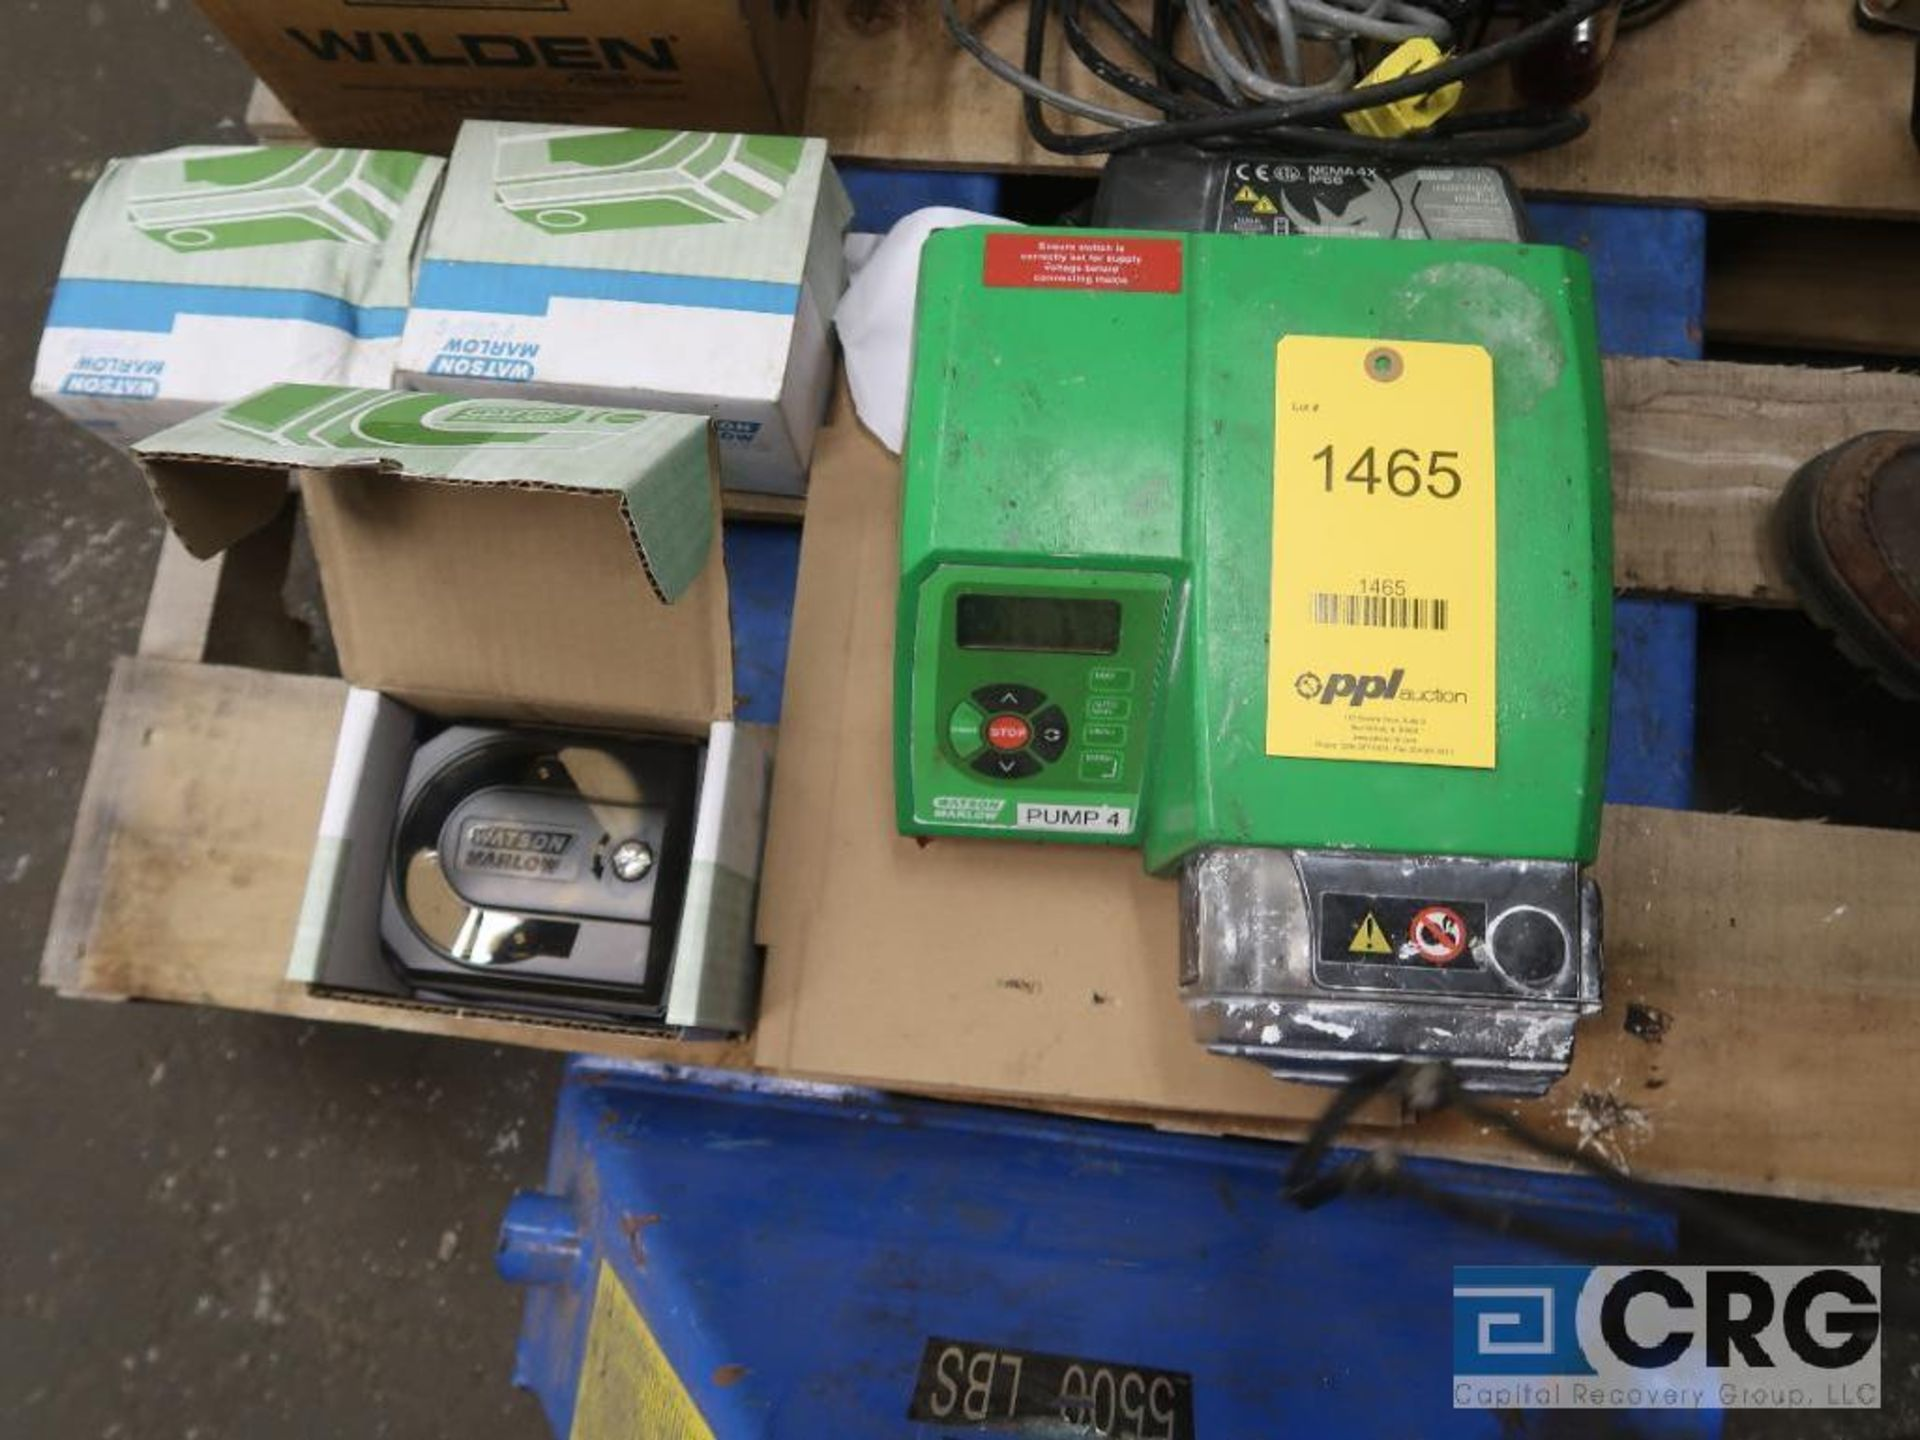 Lot of (7) assorted pumps including (2) vacuum, (2) metering, and (3) diaphragm (Basement Stores) - Image 3 of 3